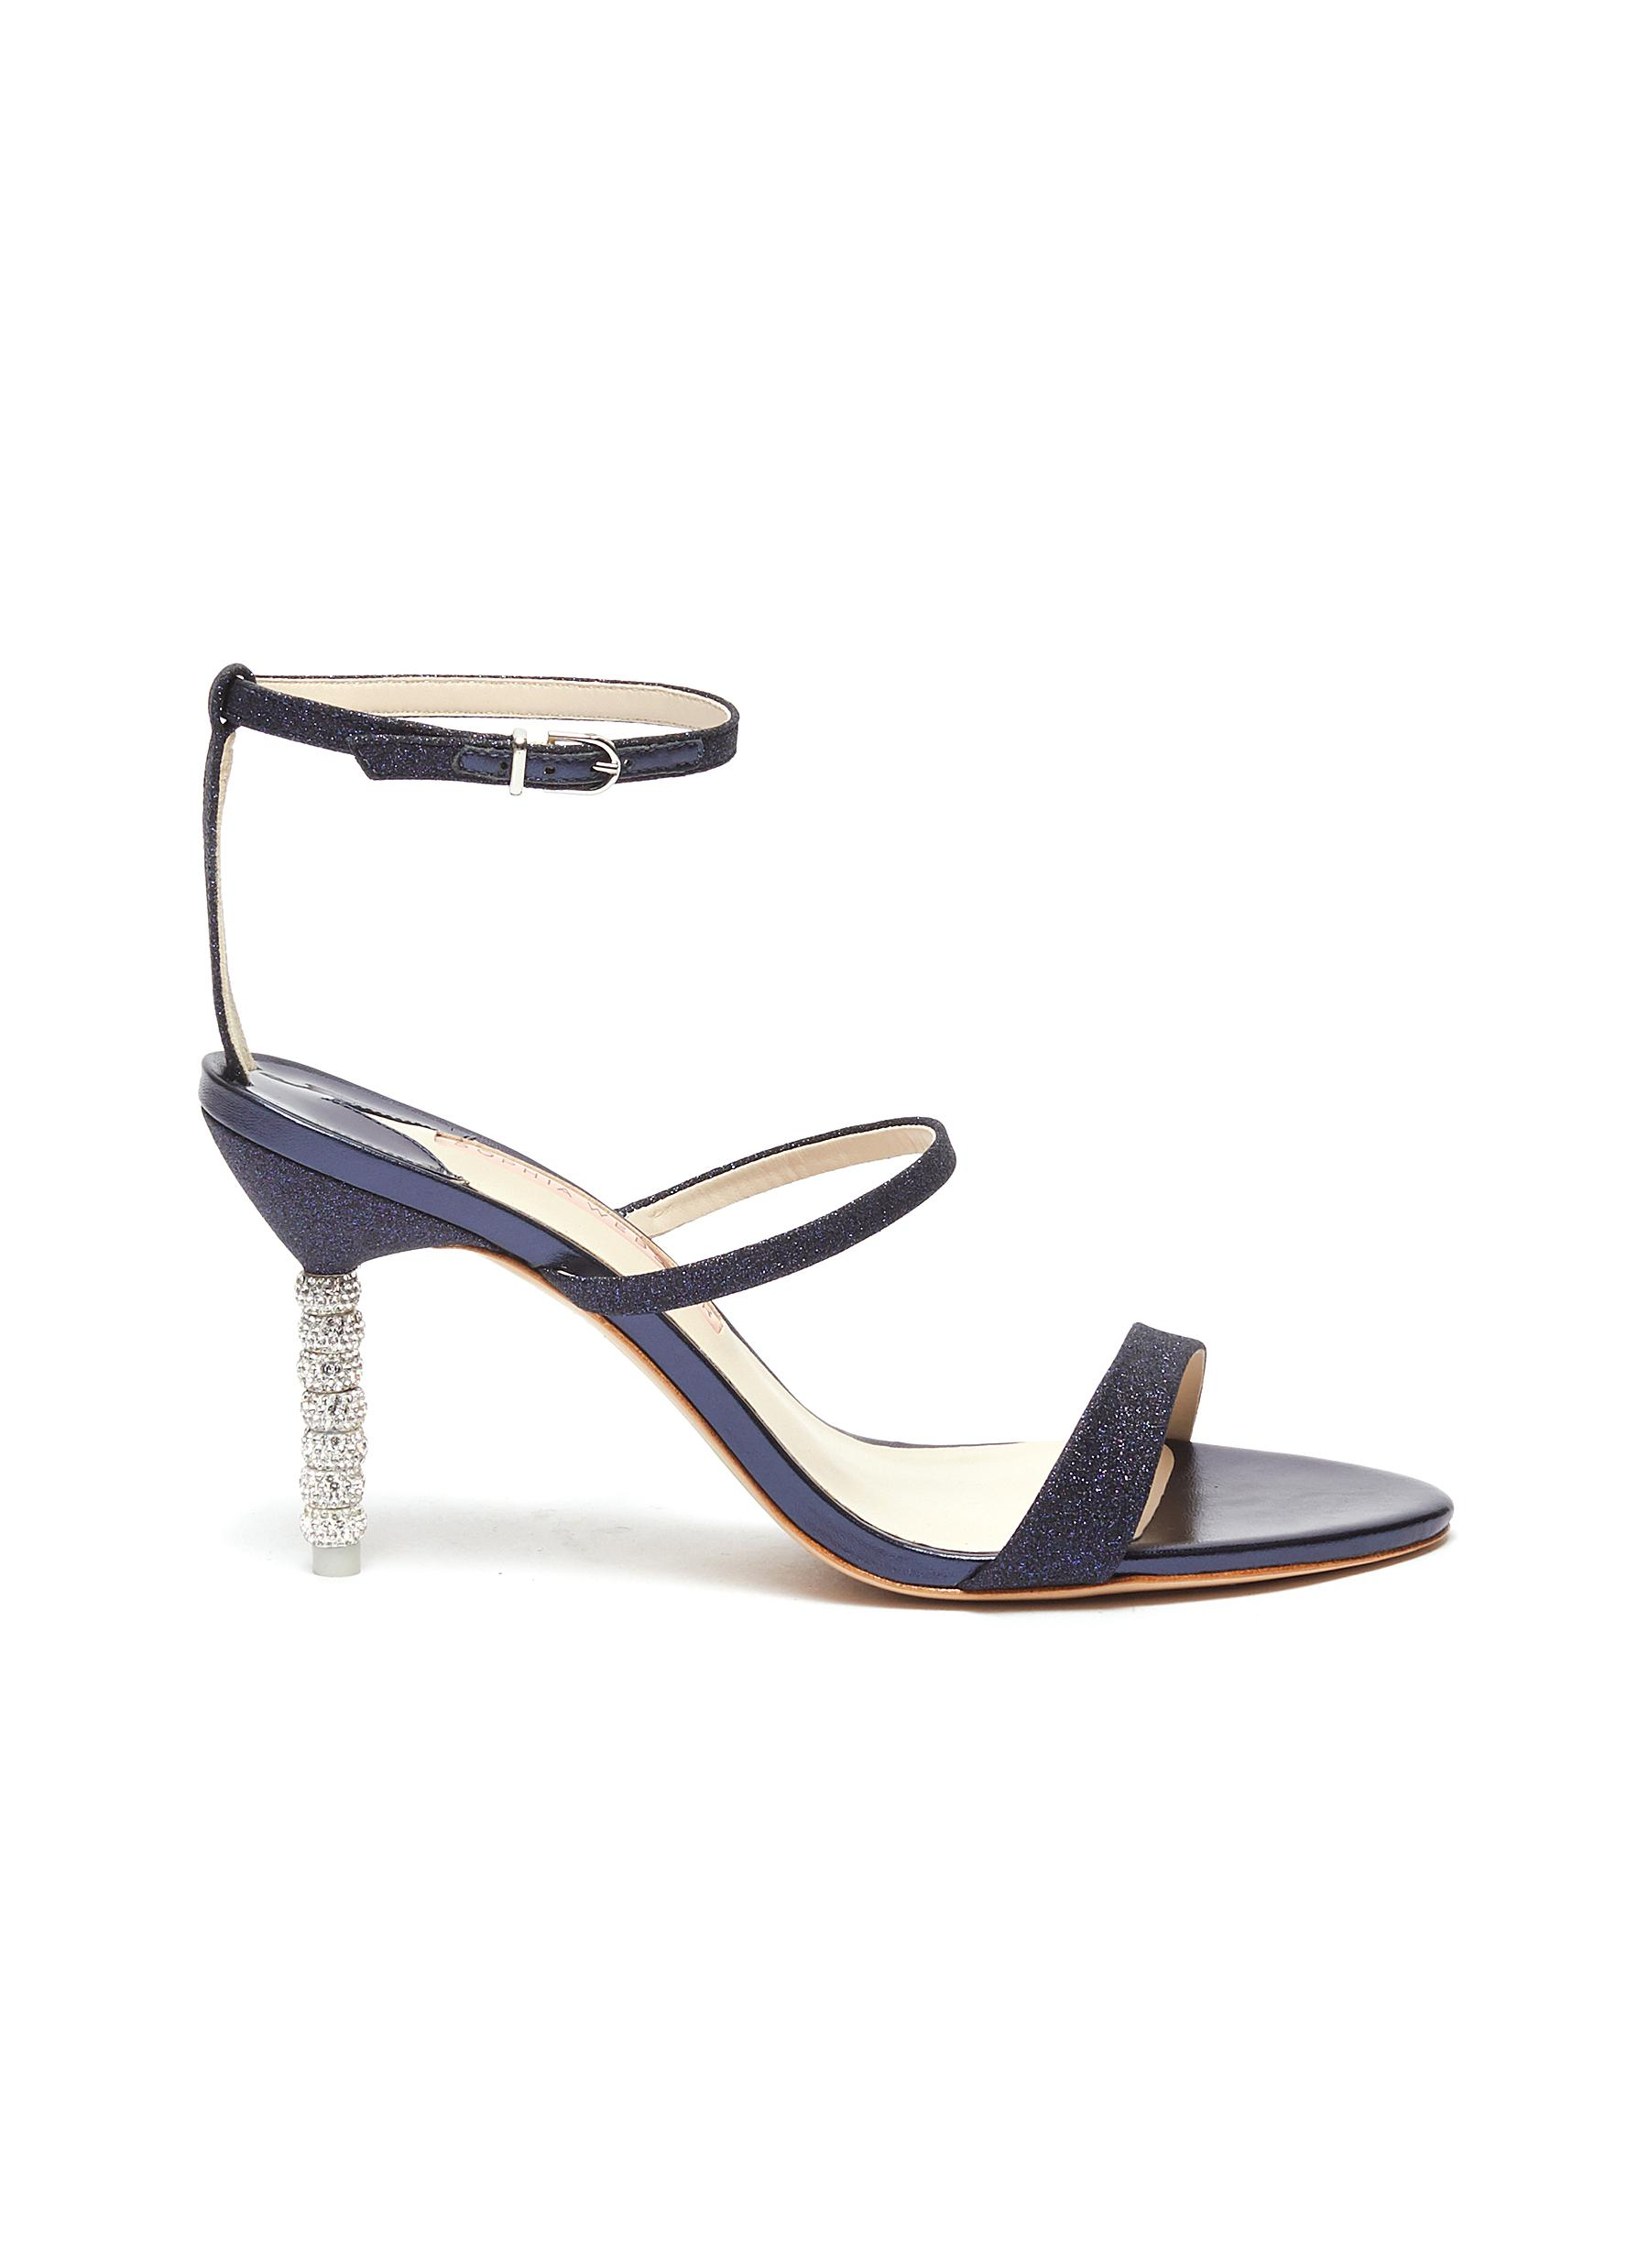 Rosalind crystal pavé bead heel sandals by Sophia Webster